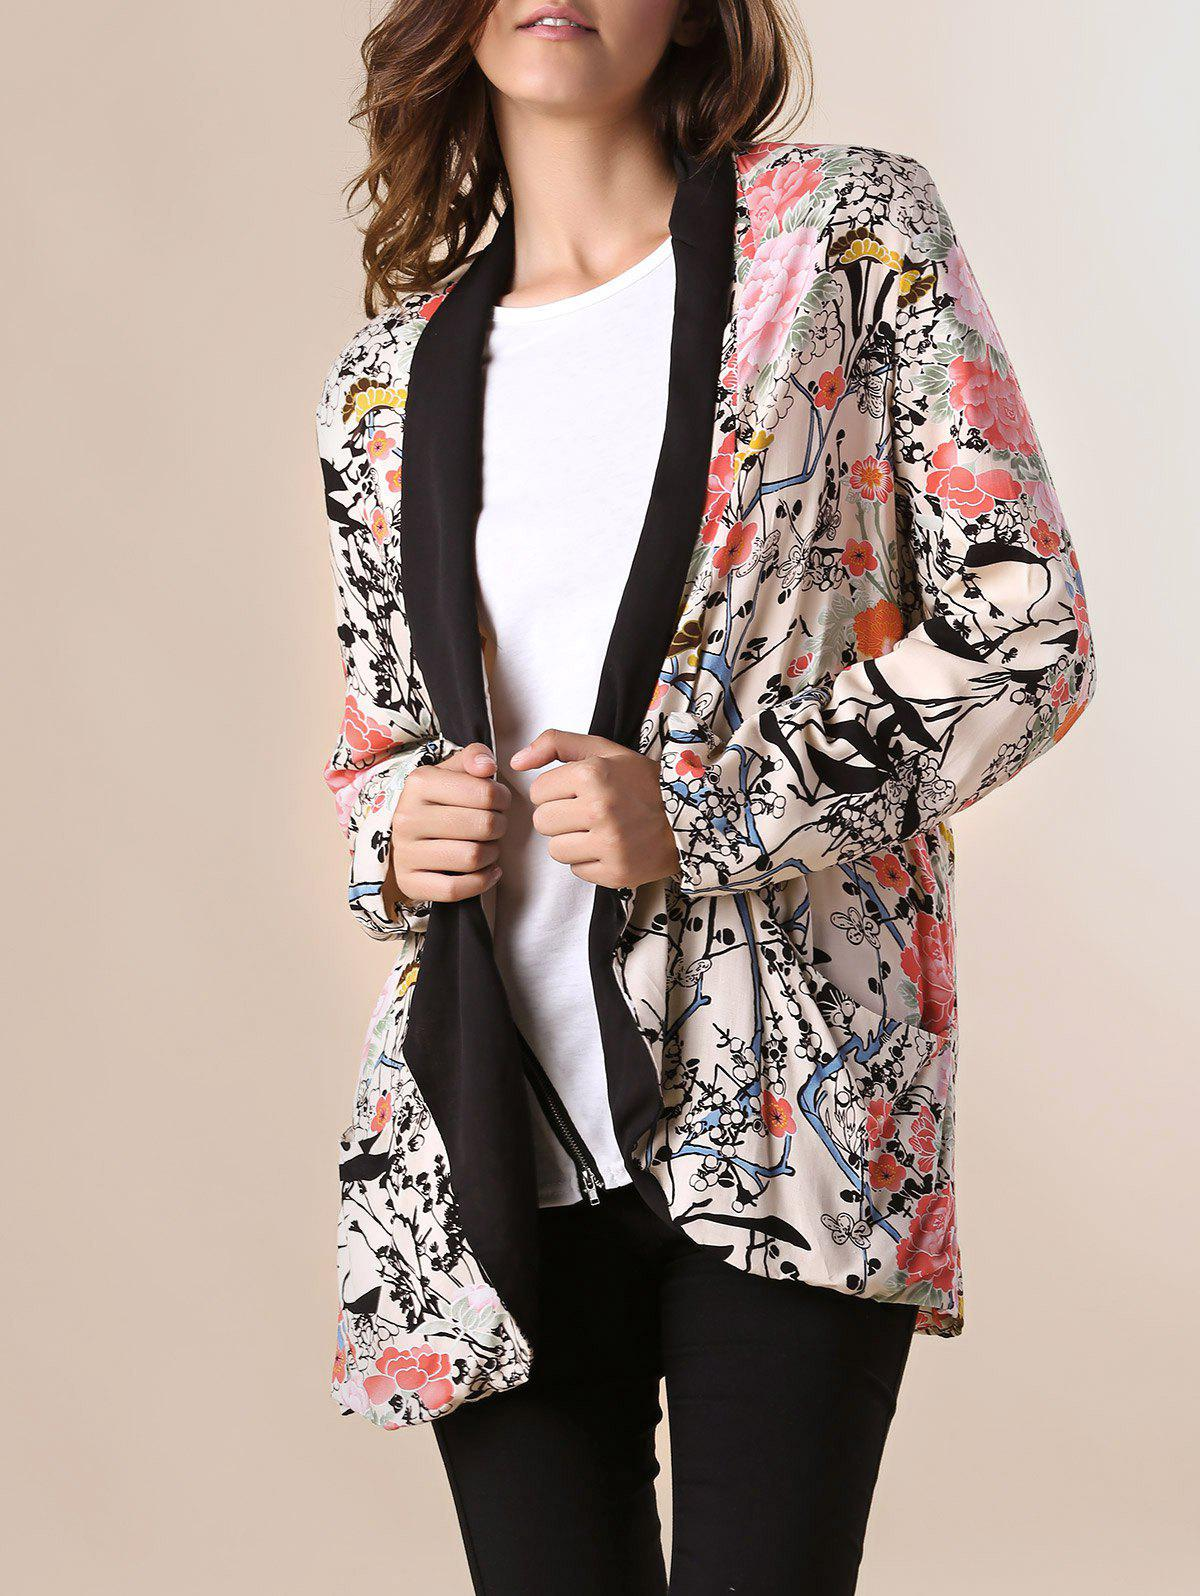 Peach Blossom Print Long Sleeve Tunr-Down Collar Trendy Style Women's Blazer peach cb 150e